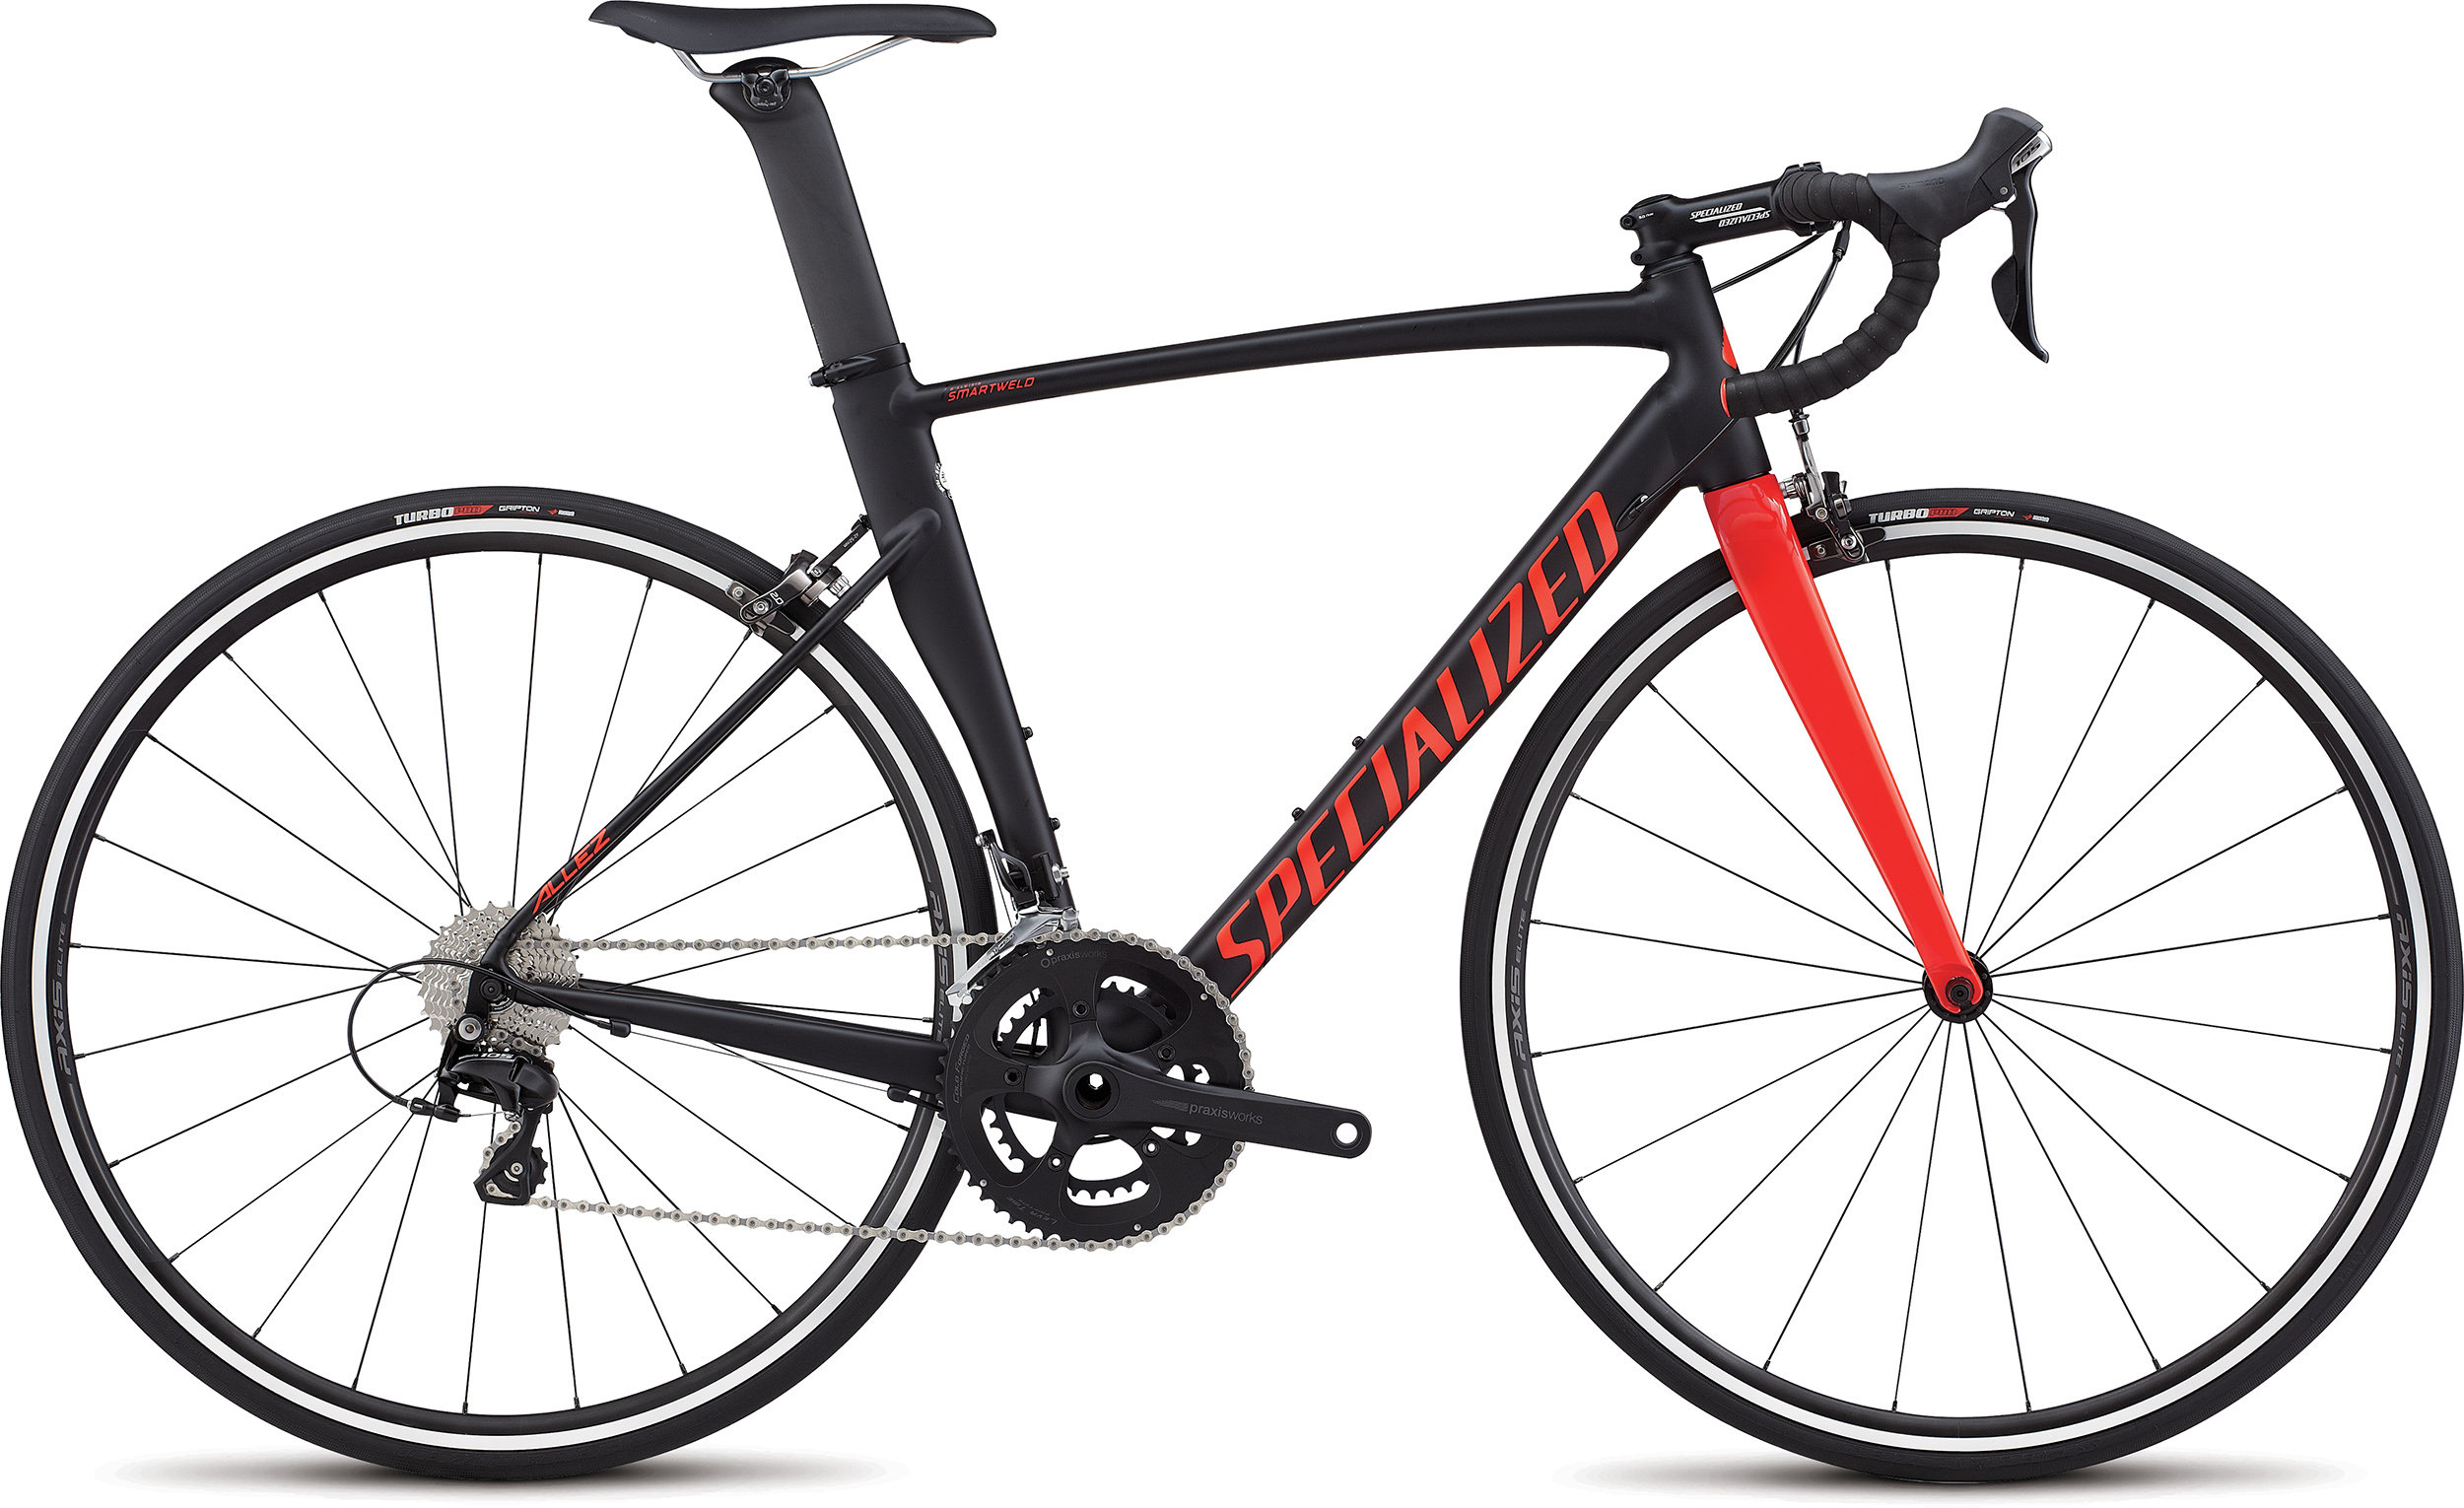 Specialized ALLEZ DSW SL SPRINT COMP RH 54 - Specialized ALLEZ DSW SL SPRINT COMP RH 54